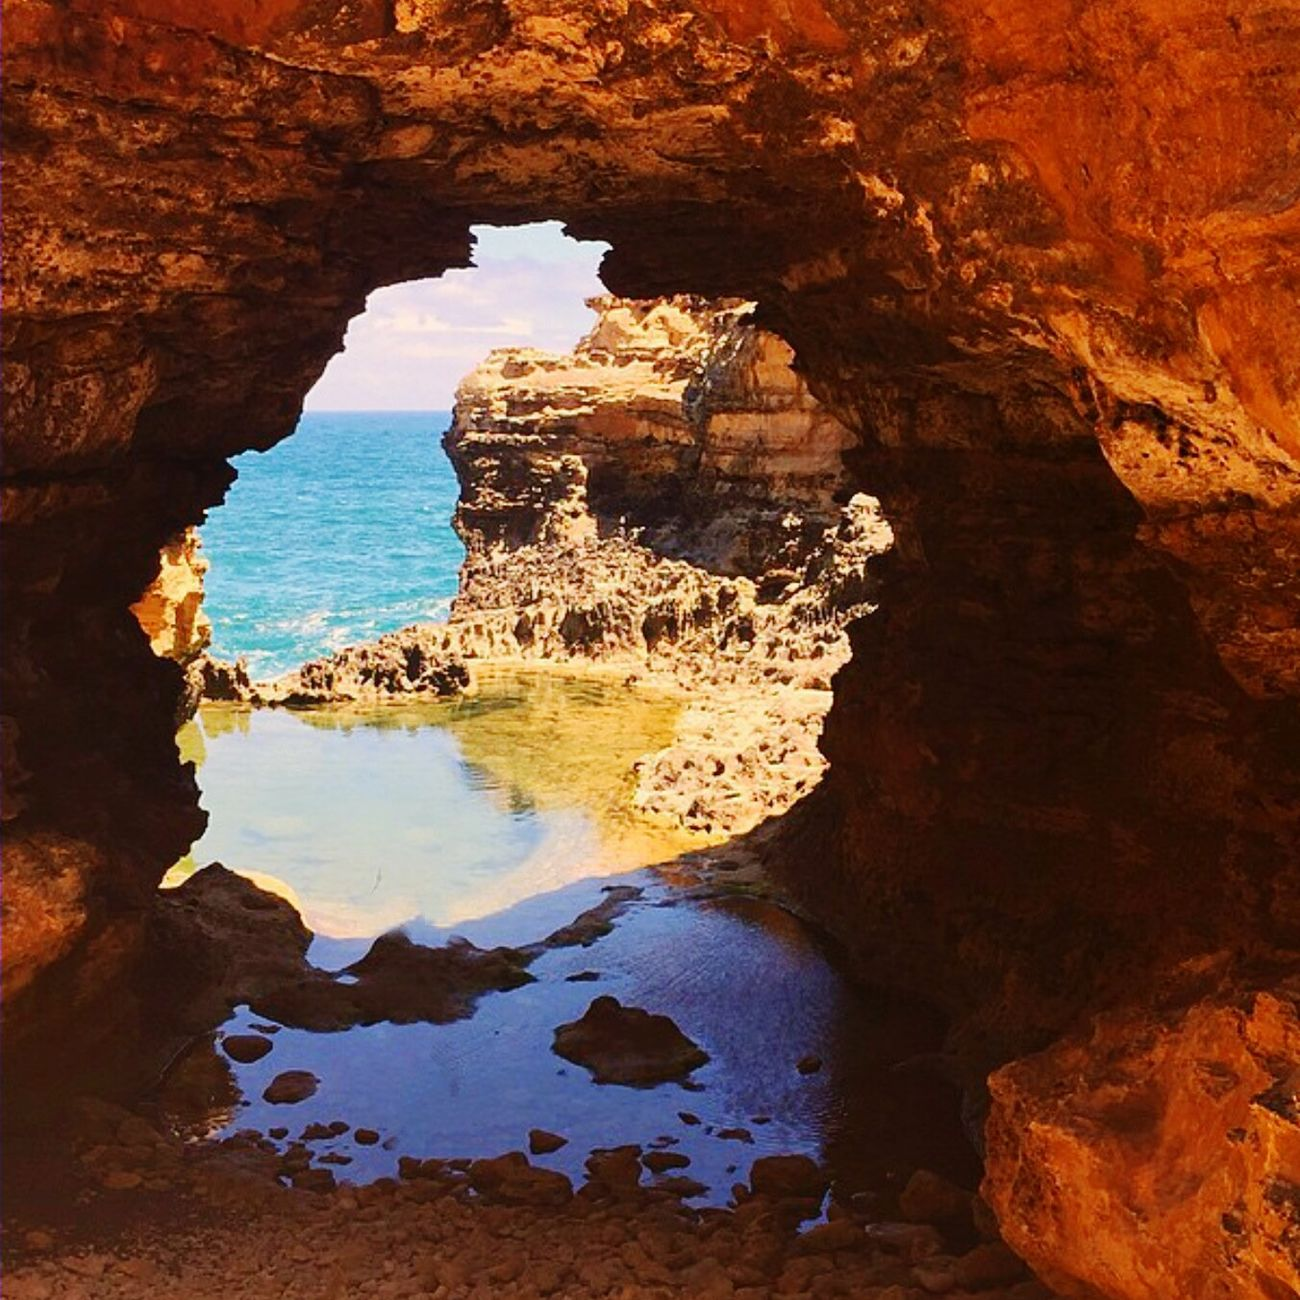 EyeEm Exploring Eye Em Nature Lover Beautiful Nature Beautiful View Bestoftheday Beachphotography Beach Cave EyeEm Best Edits Nature's Secret Spot a door way to the other side!!!!!